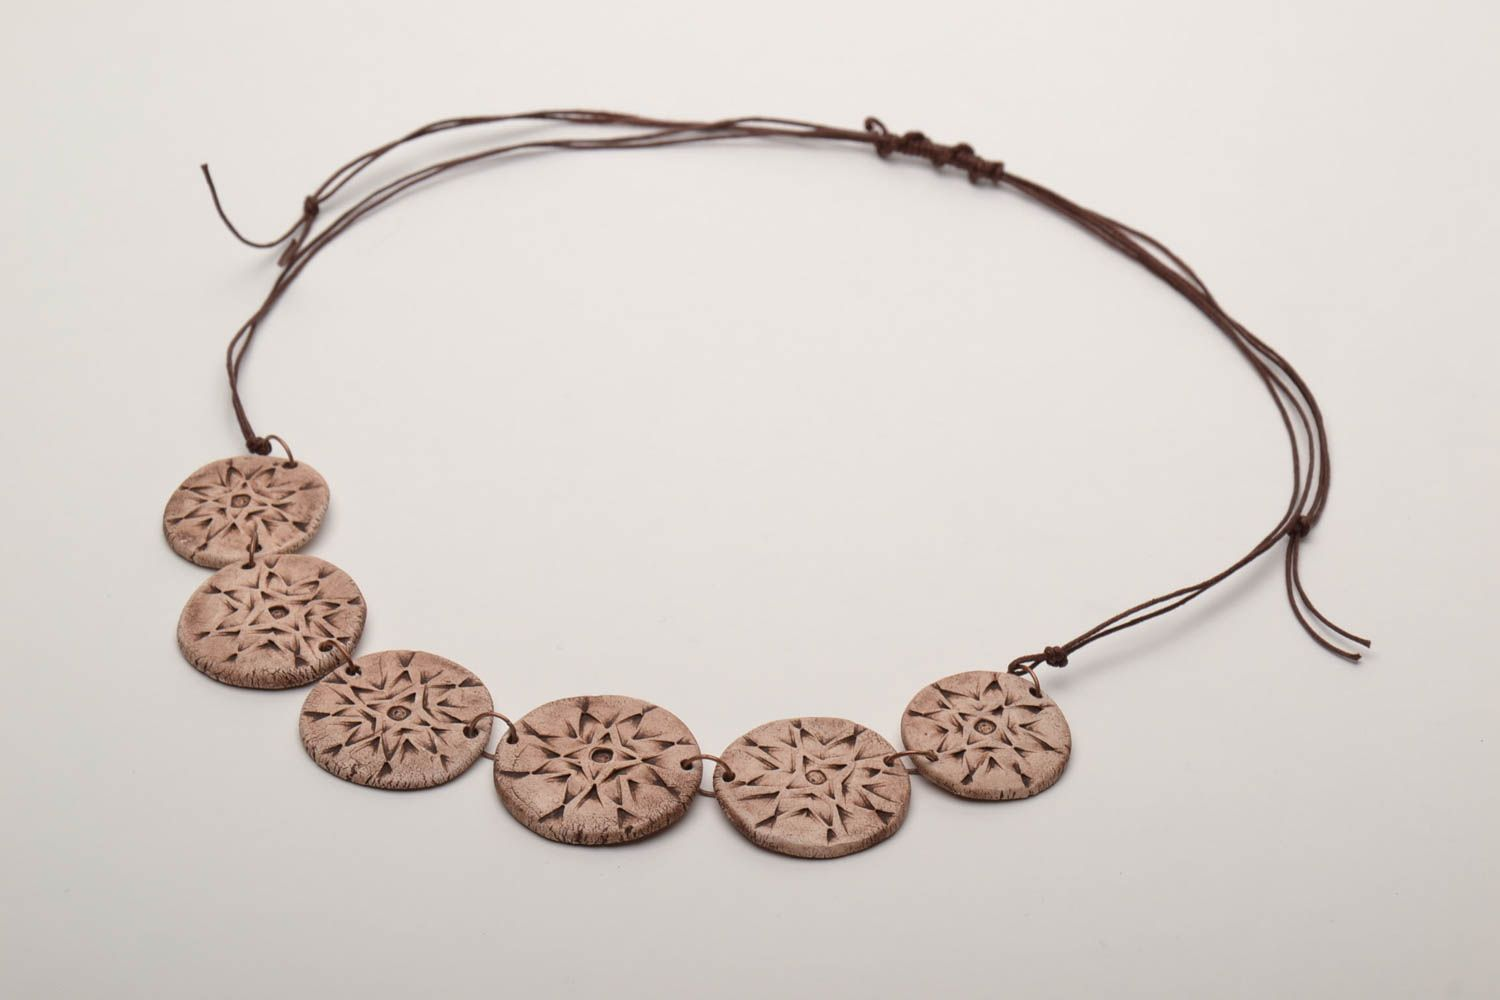 Ceramic necklace with ethnic ornaments photo 3